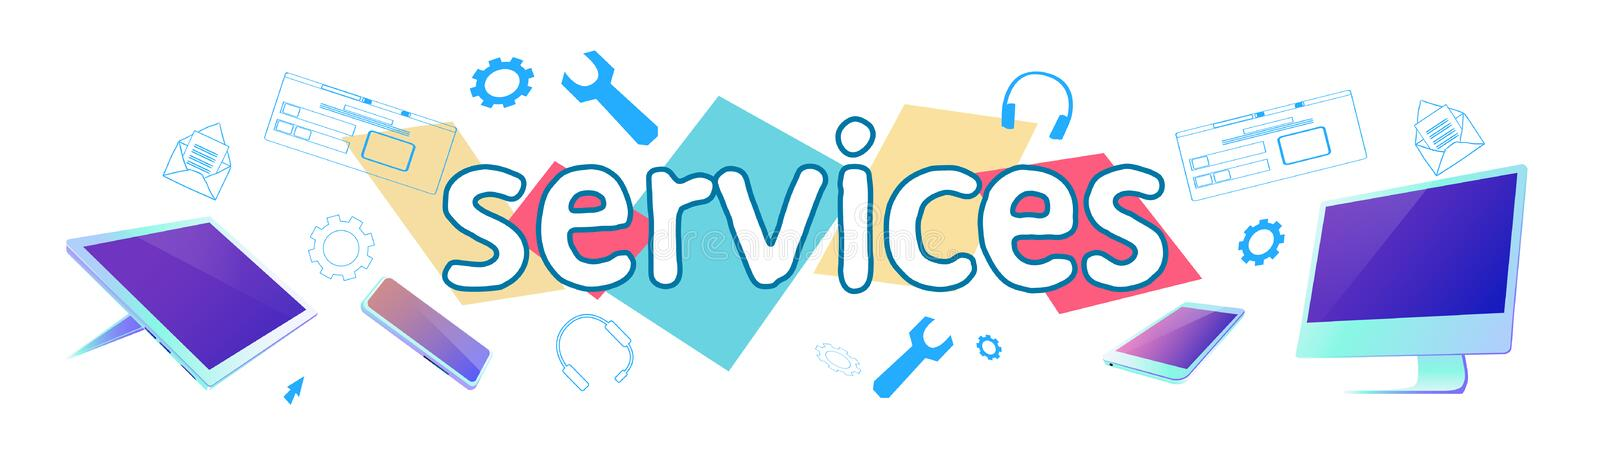 Seo web search services engine searching online browsing concept horizontal banner sketch doodle royalty free illustration